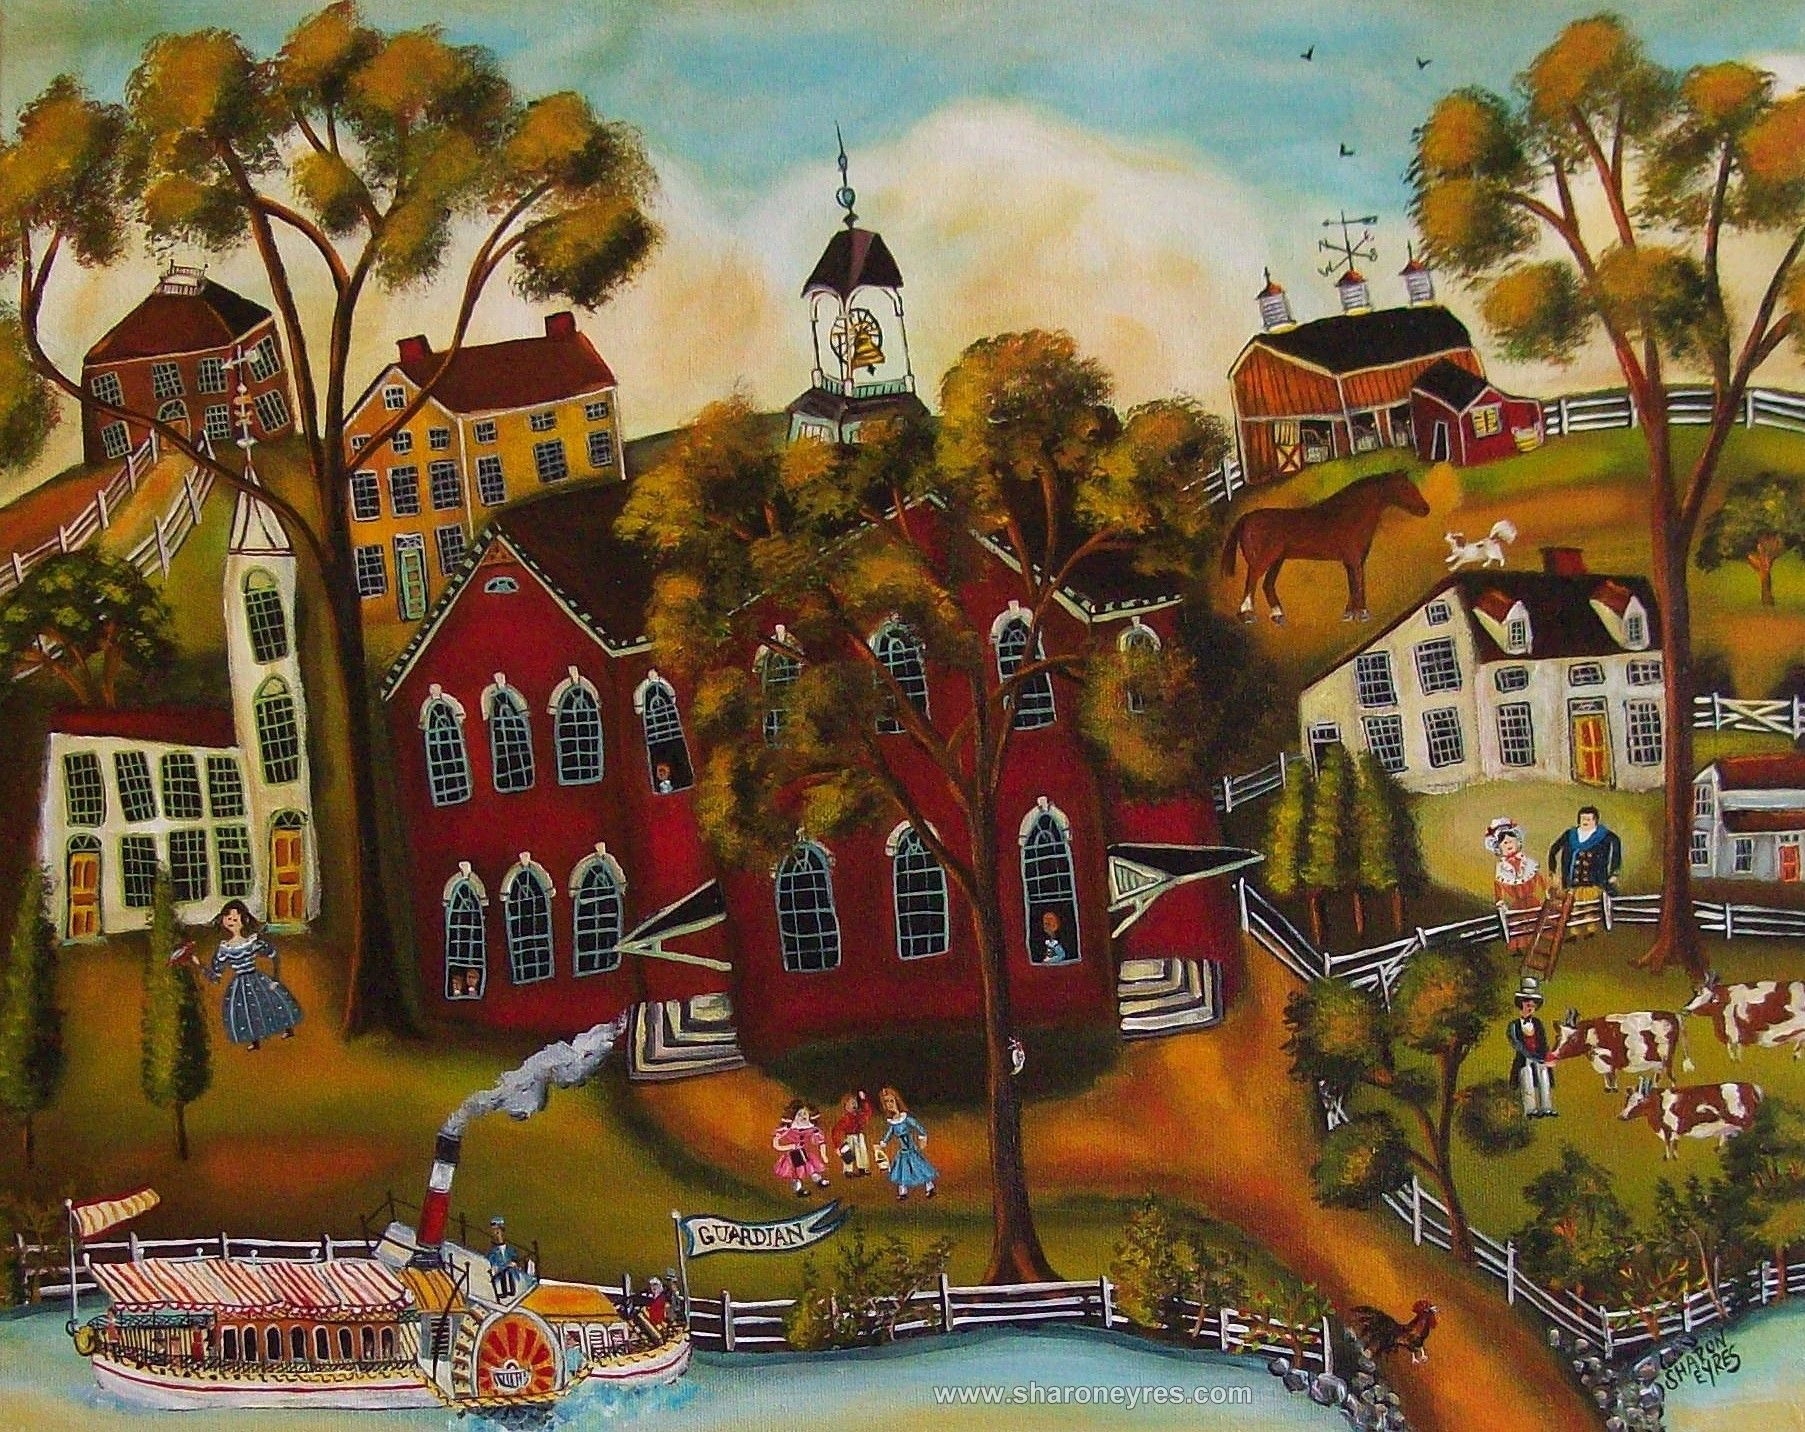 Primitive American folk by self taught artist Sharon Eyres